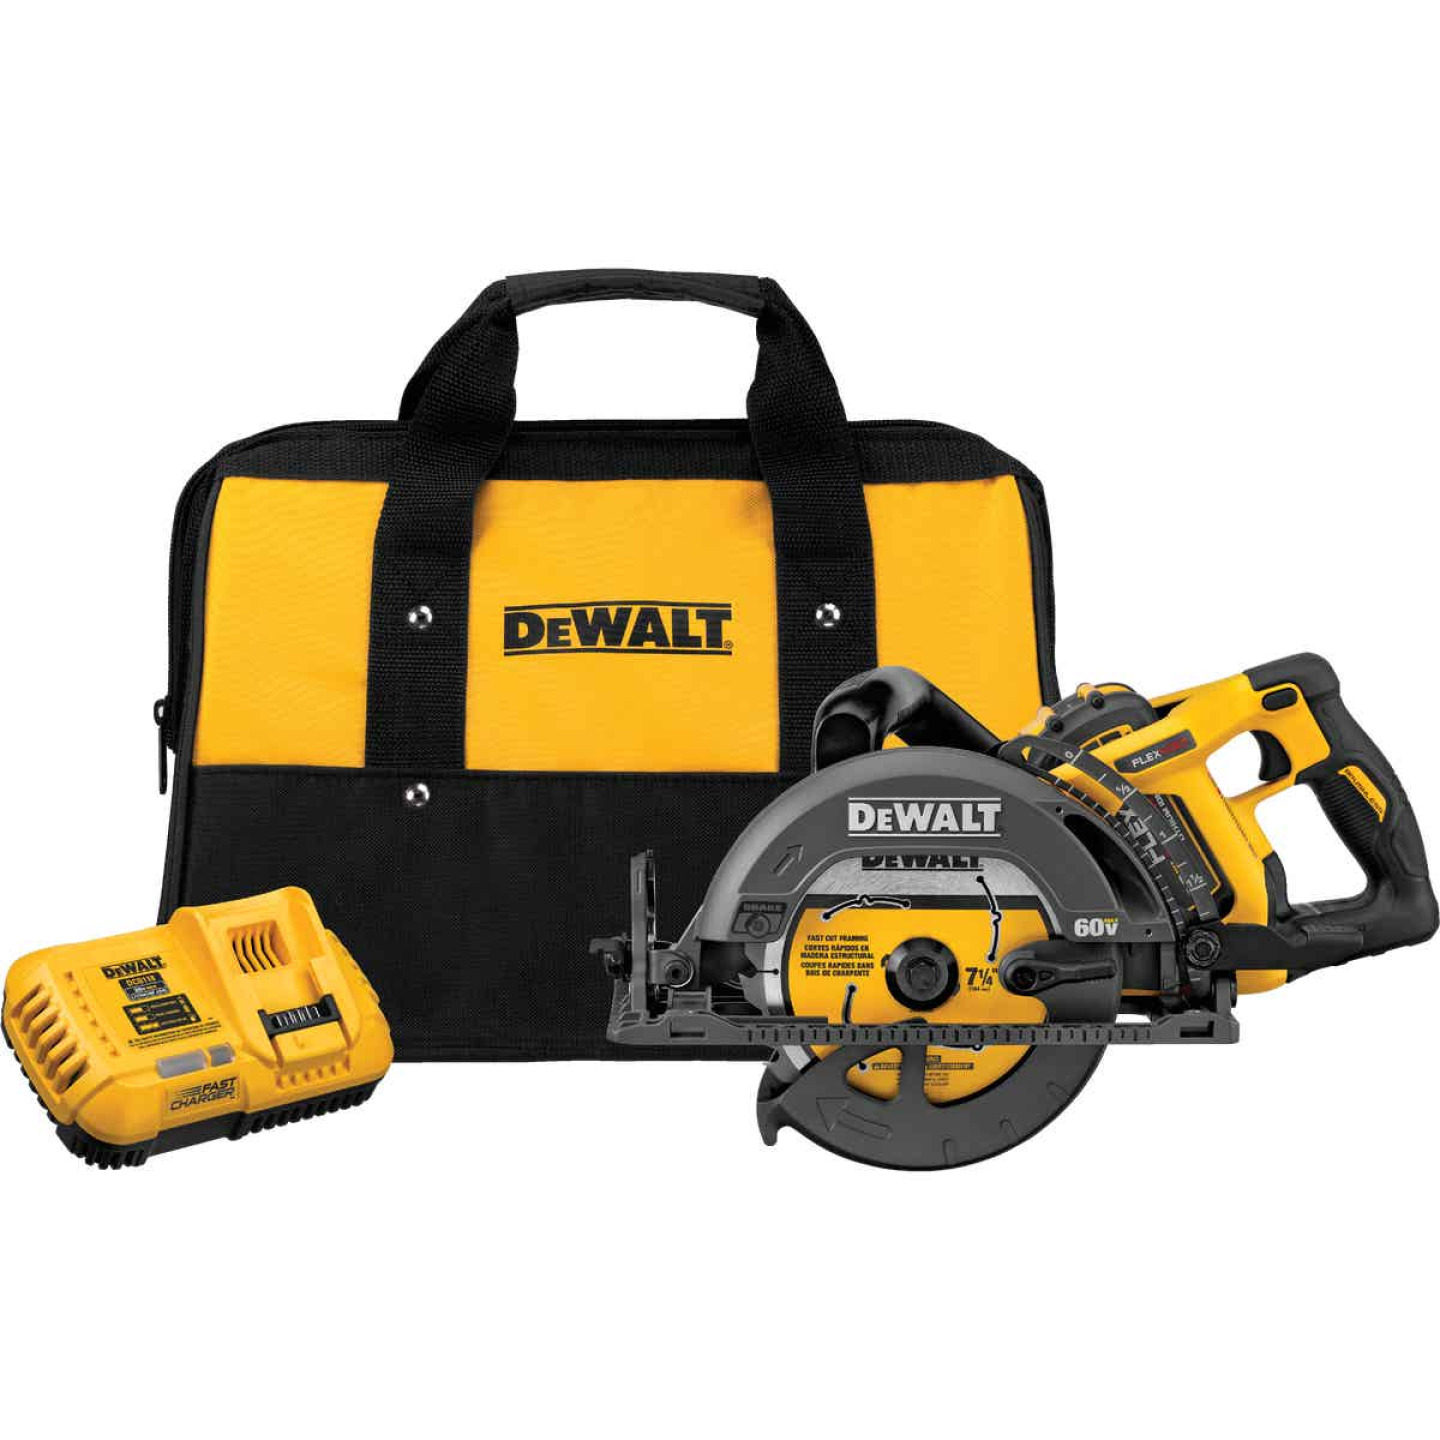 DeWalt Flexvolt 60V MAX Lithium-Ion 7-1/4 In. Cordless Worm Drive Saw Kit Image 1